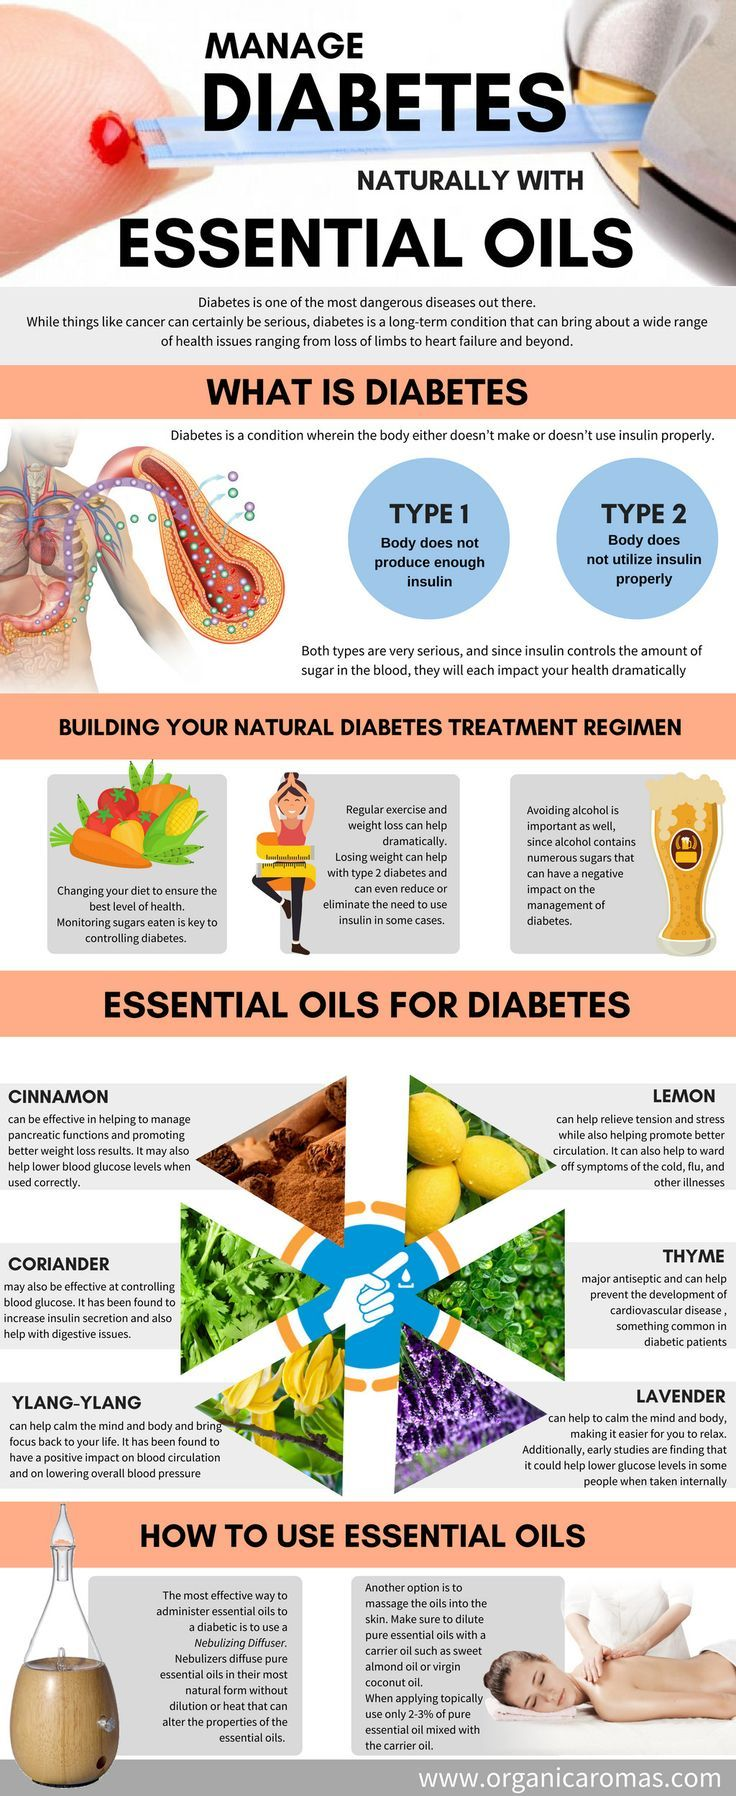 Manage Diabetes Naturally Info-graphic by Organic Aromas